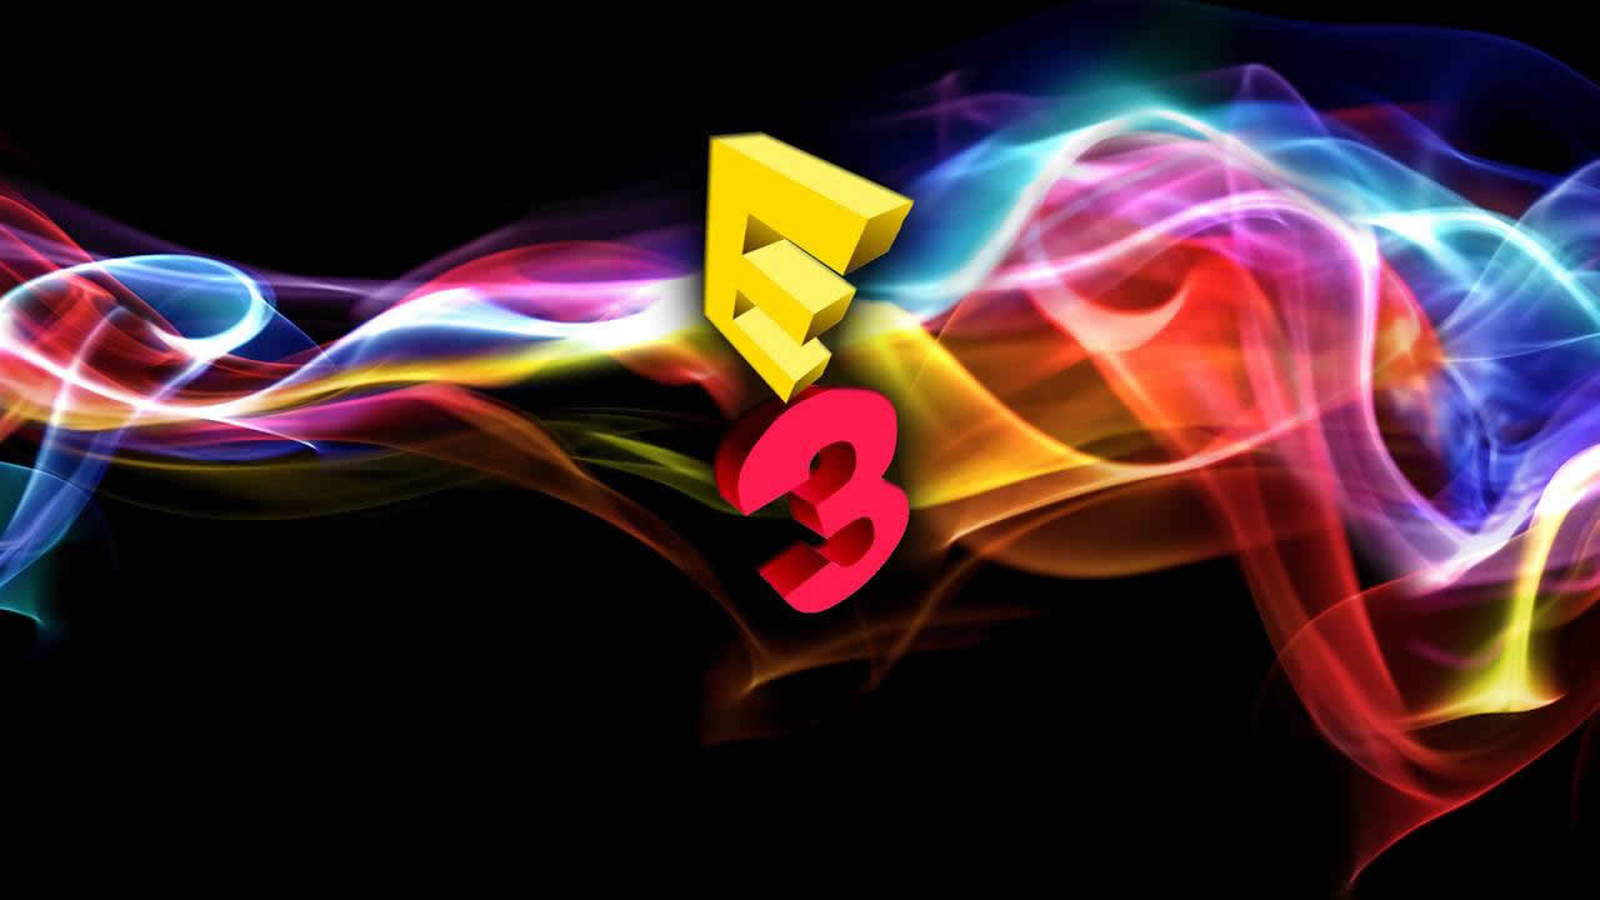 pics E3 2015 photo images Electronics Entertainment Expo 2015 reveals